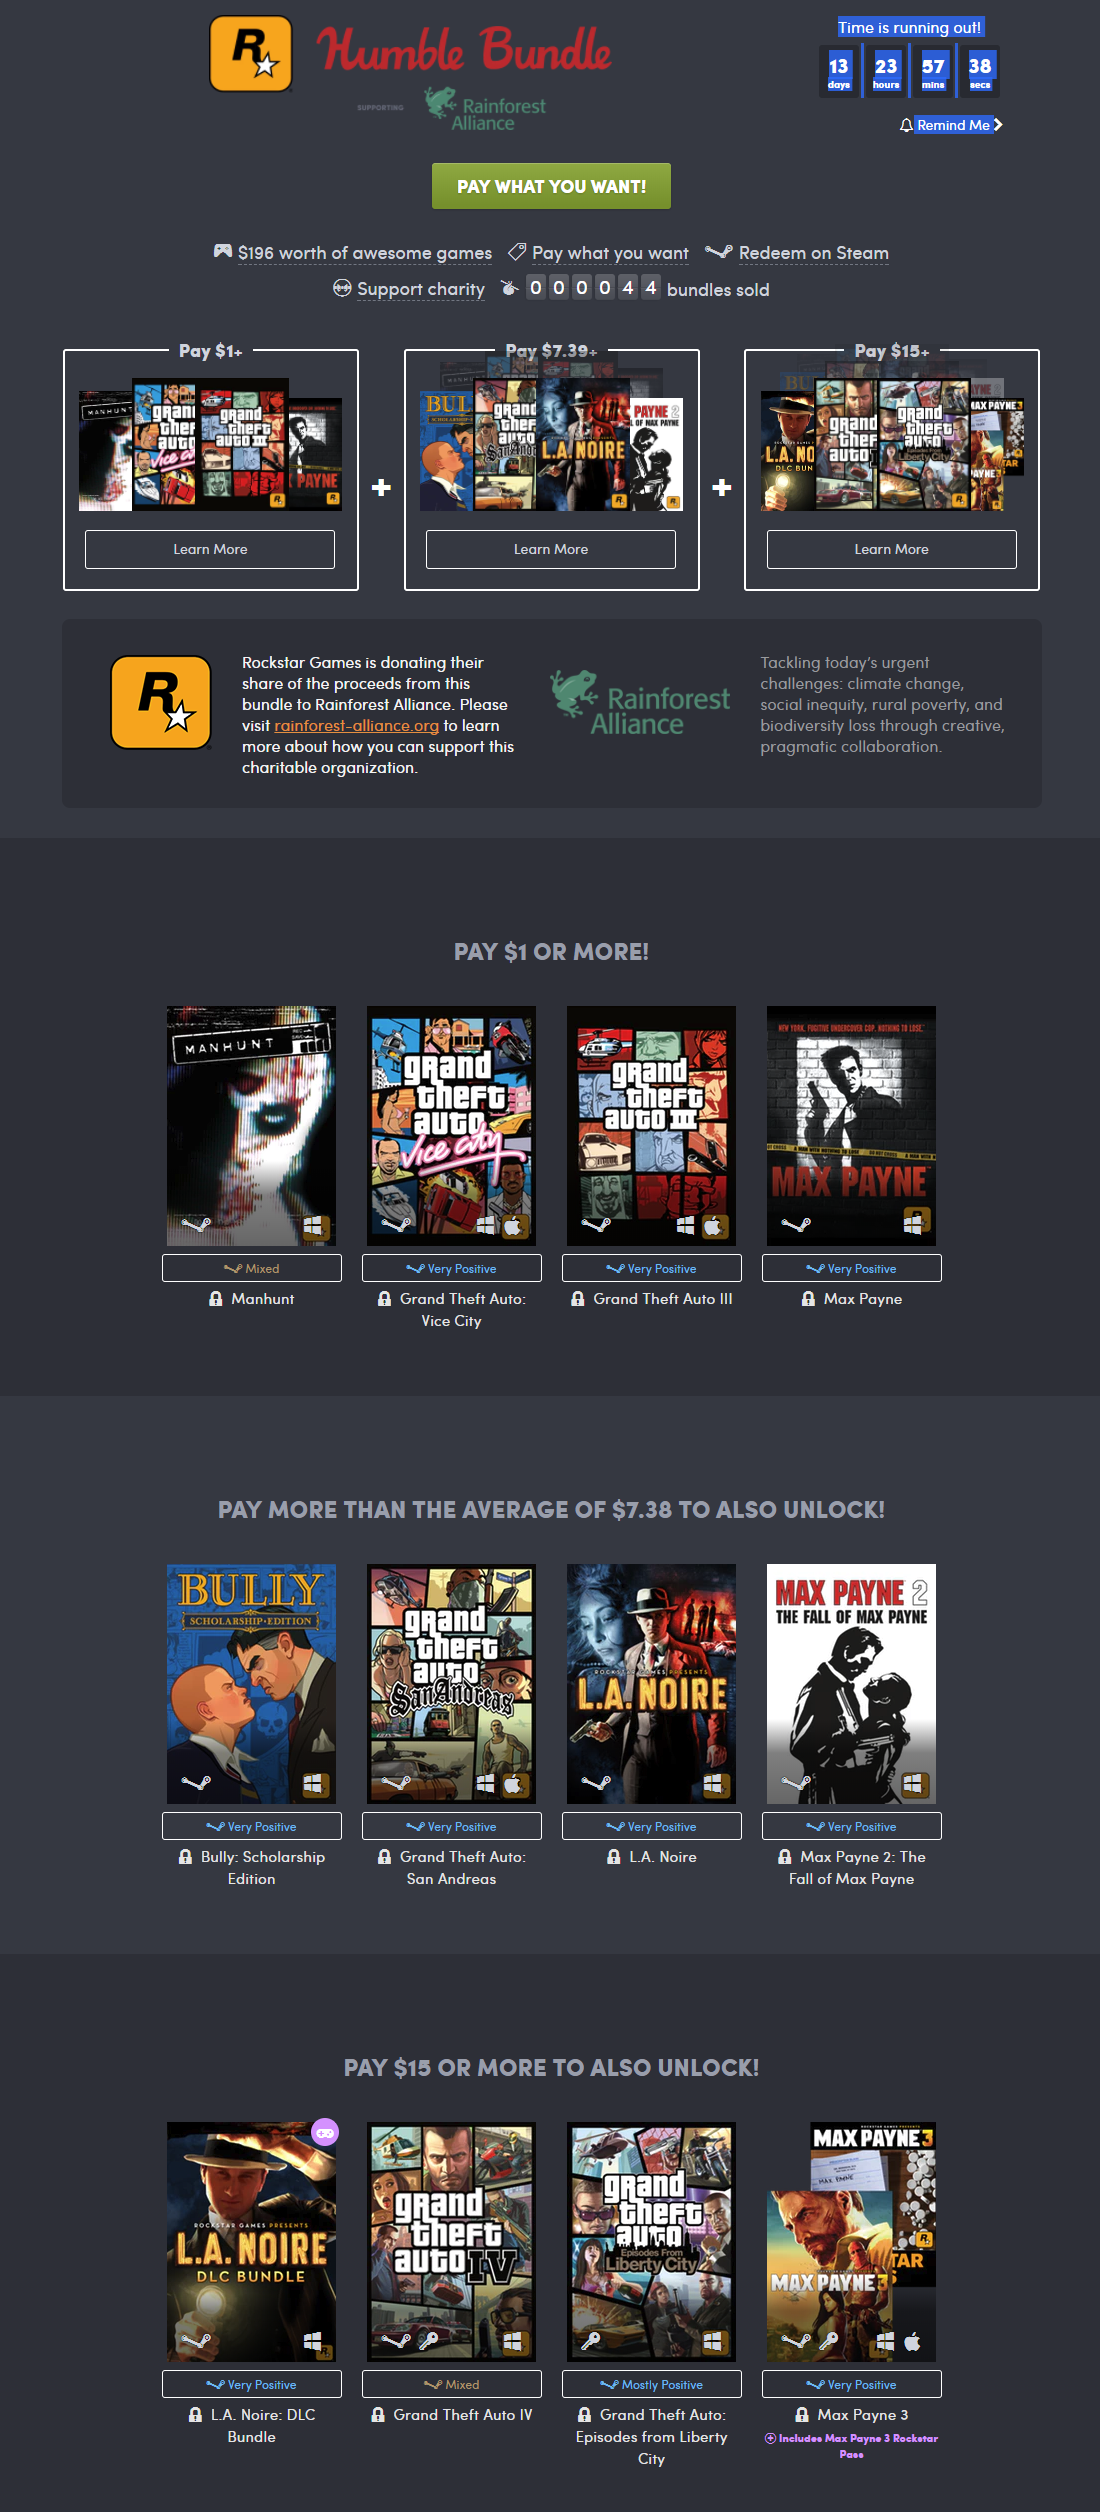 screenshot-www.humblebundle.com-2018-01-31-04-02-22-570.png